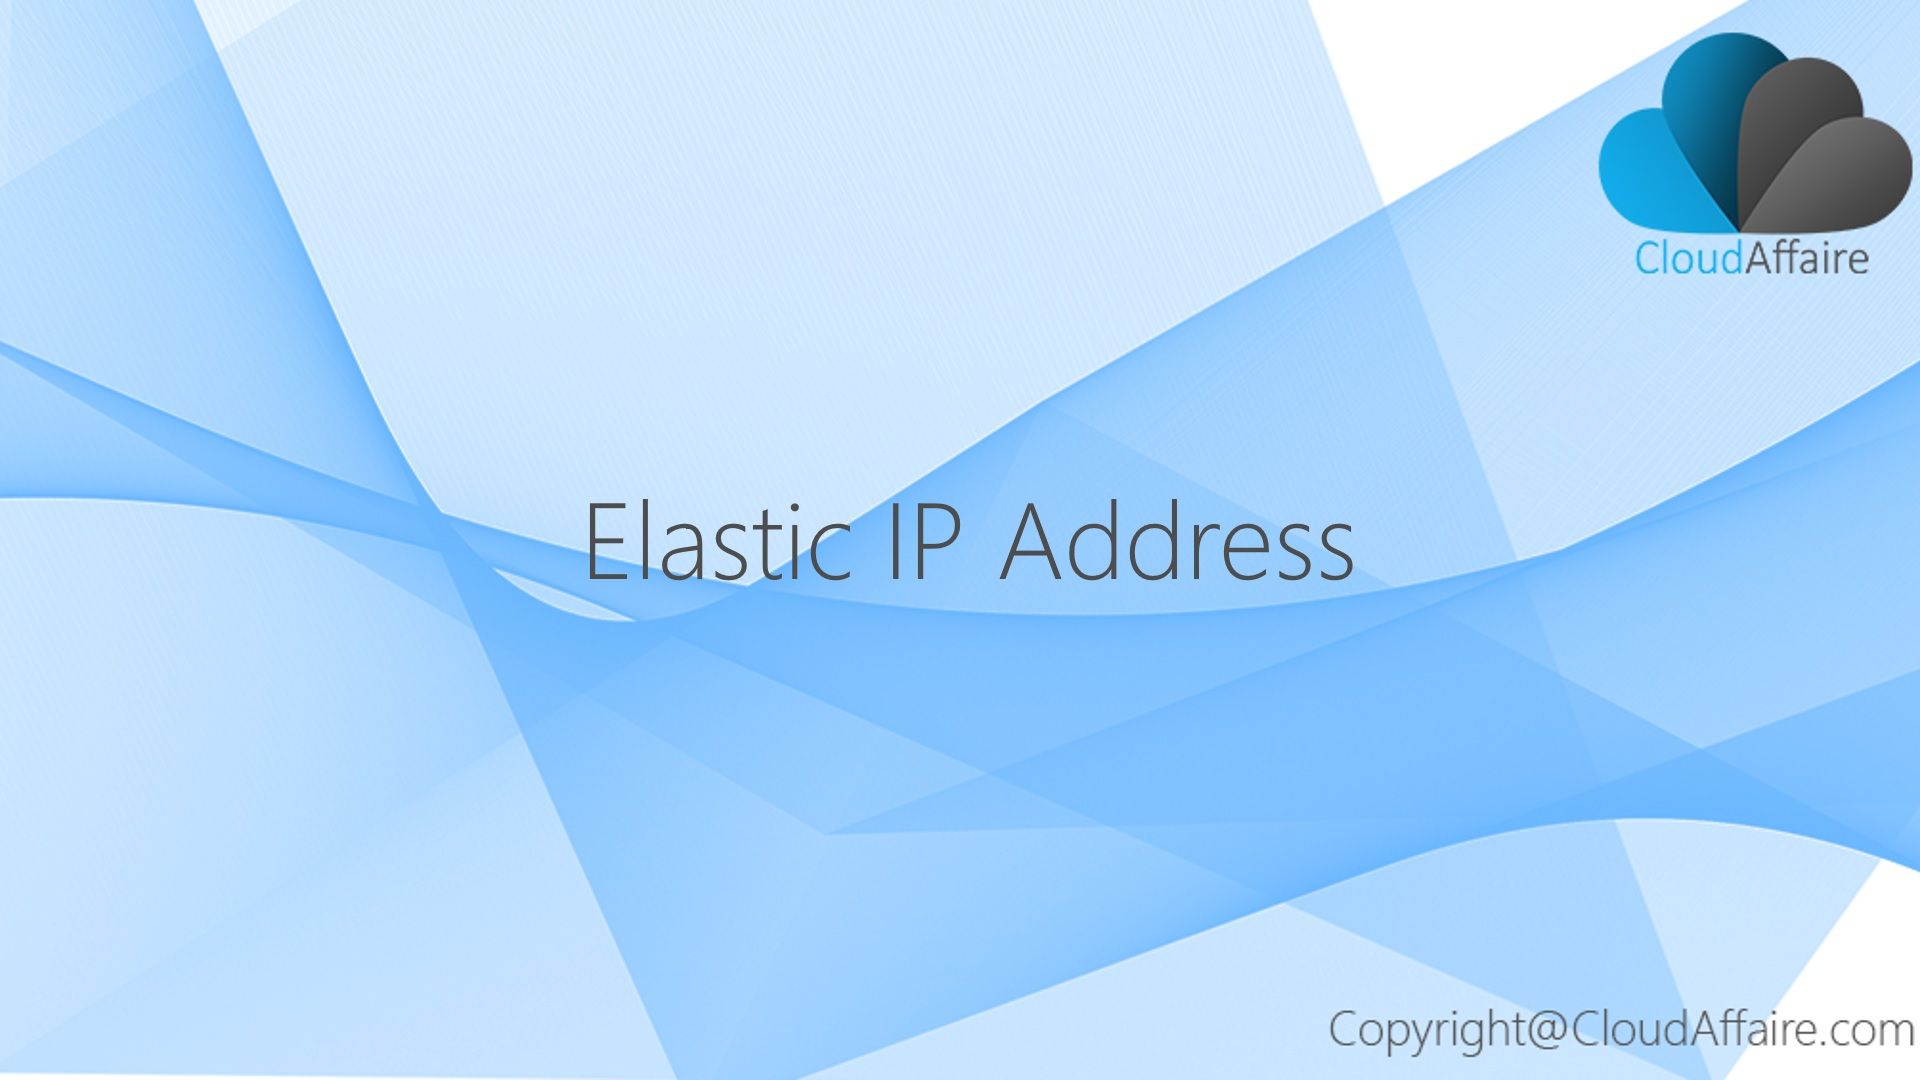 Elastic IP Address